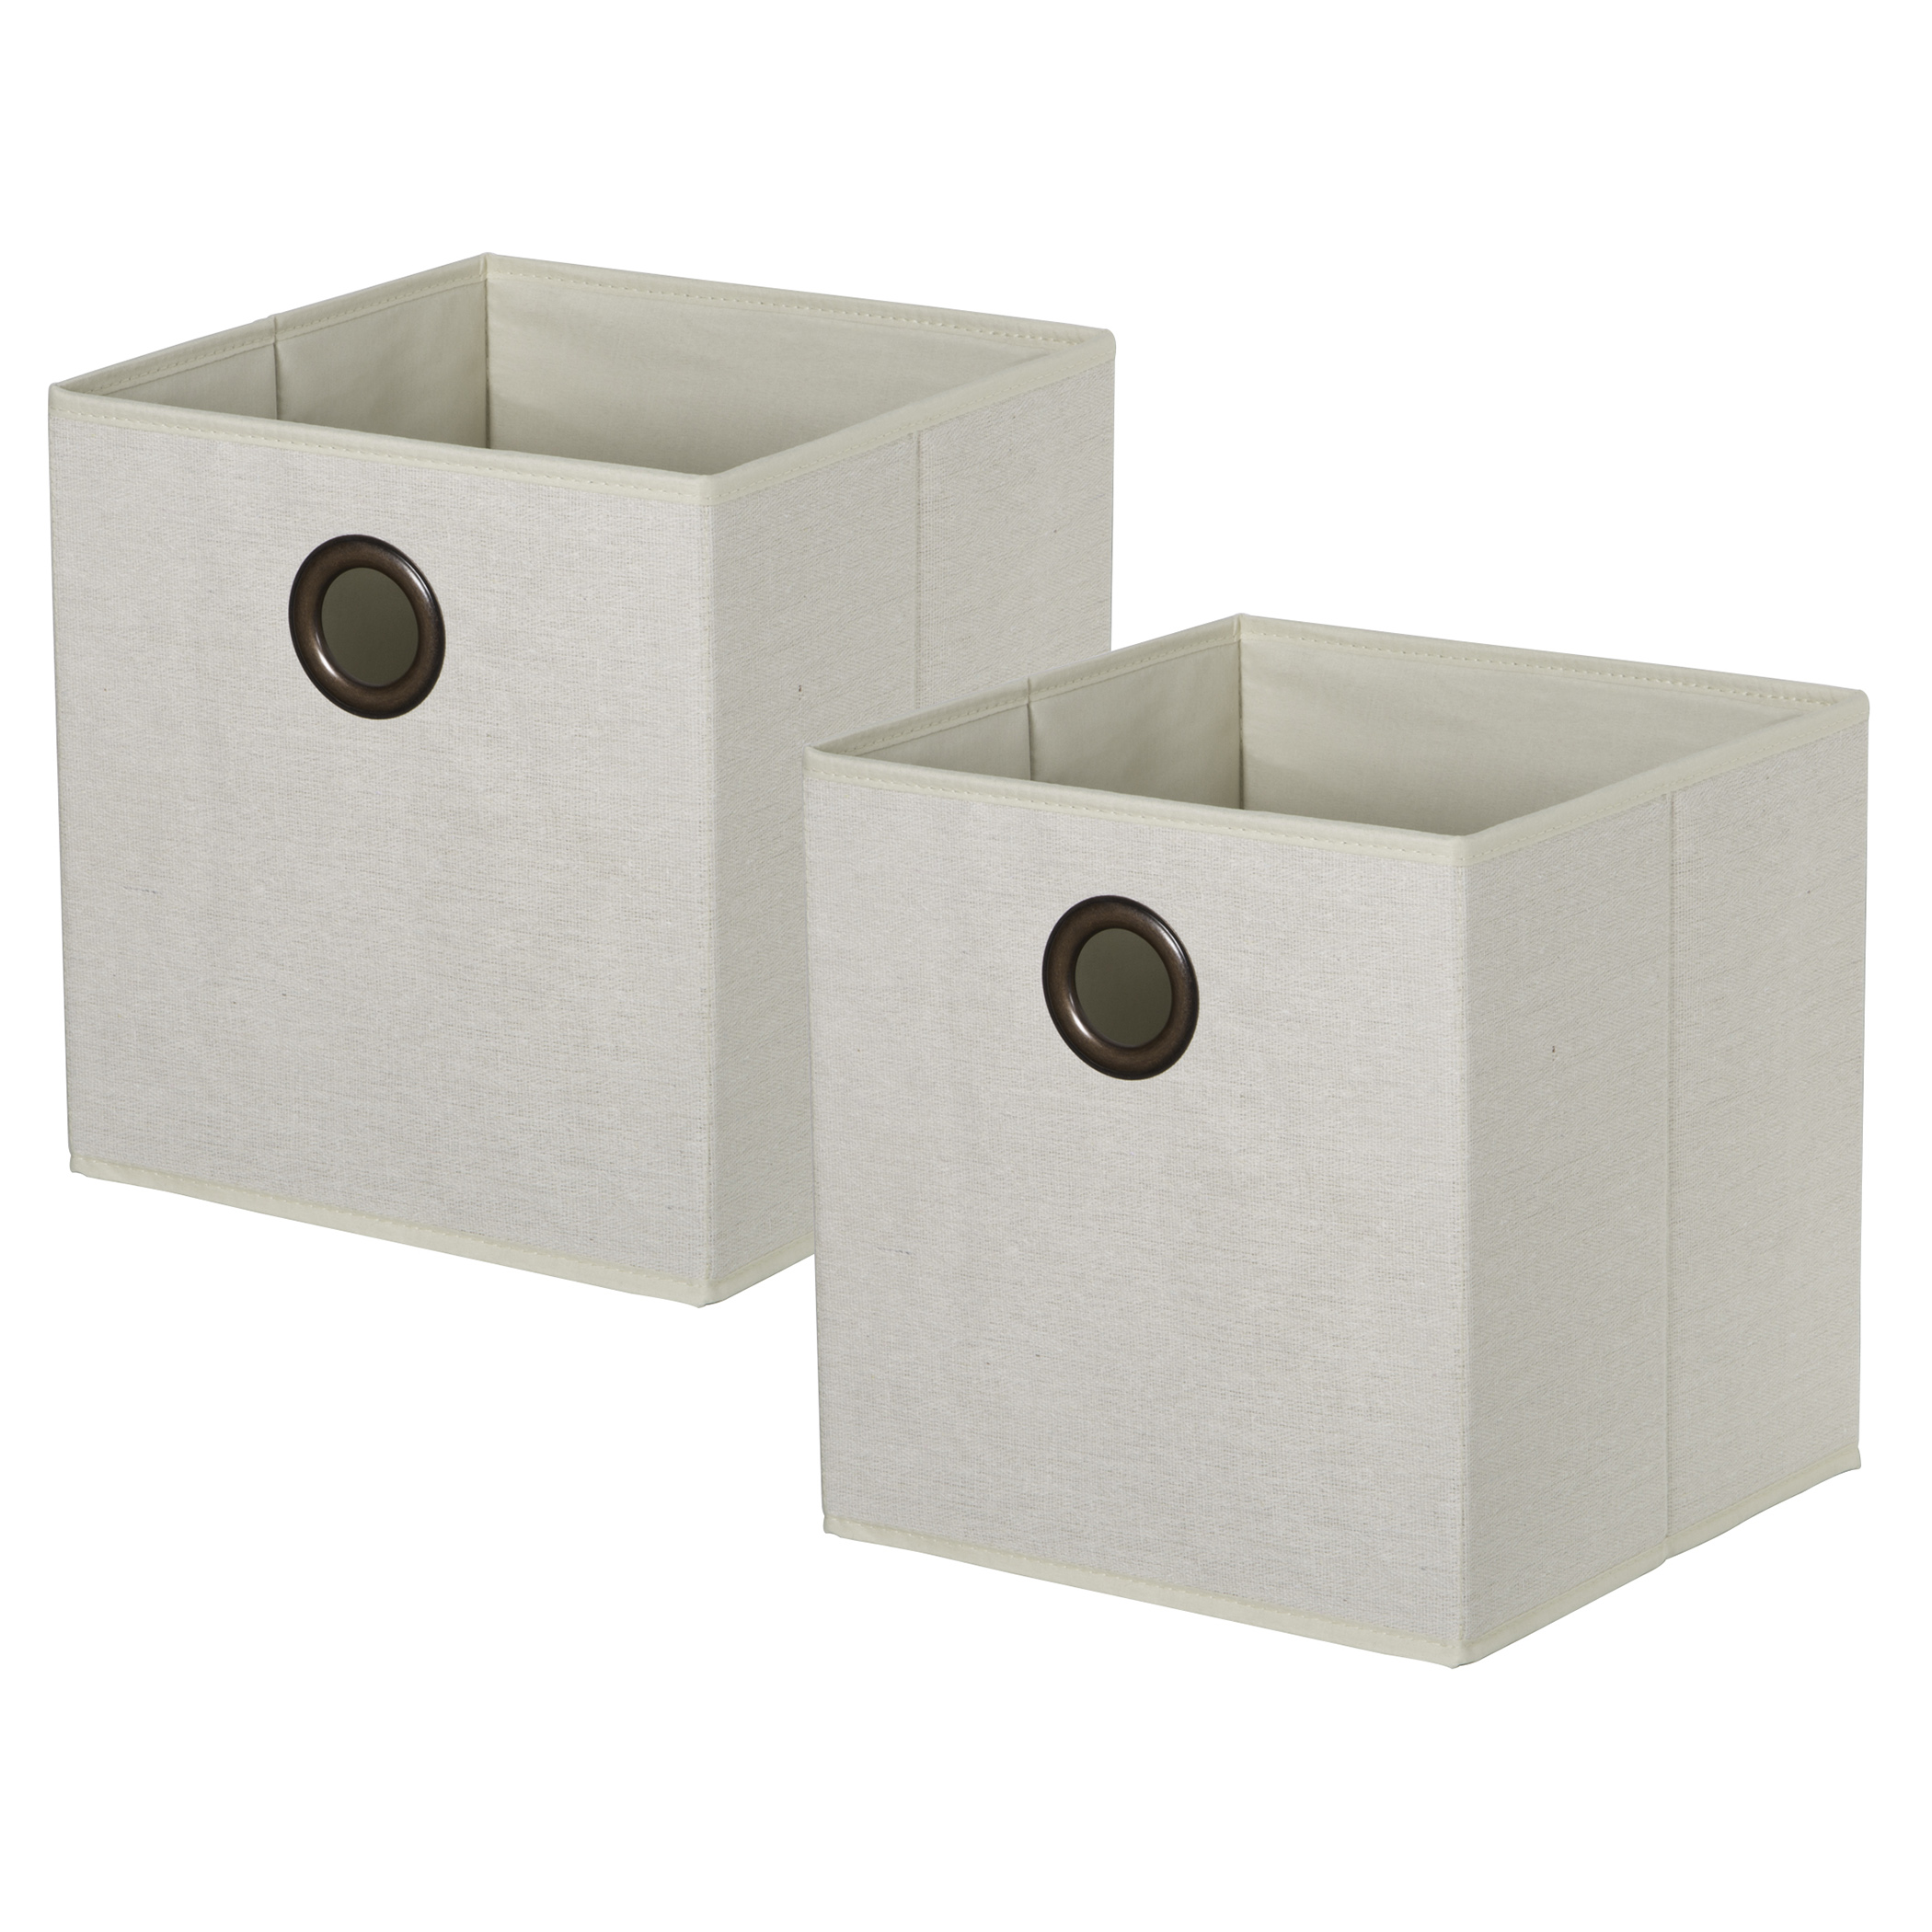 Set of 2 KD Cubes - NaturalItem #86101032 - Natural arrow weave KD cubes with metal grommet handles. Fold flat when not in use.Dimensions: 11